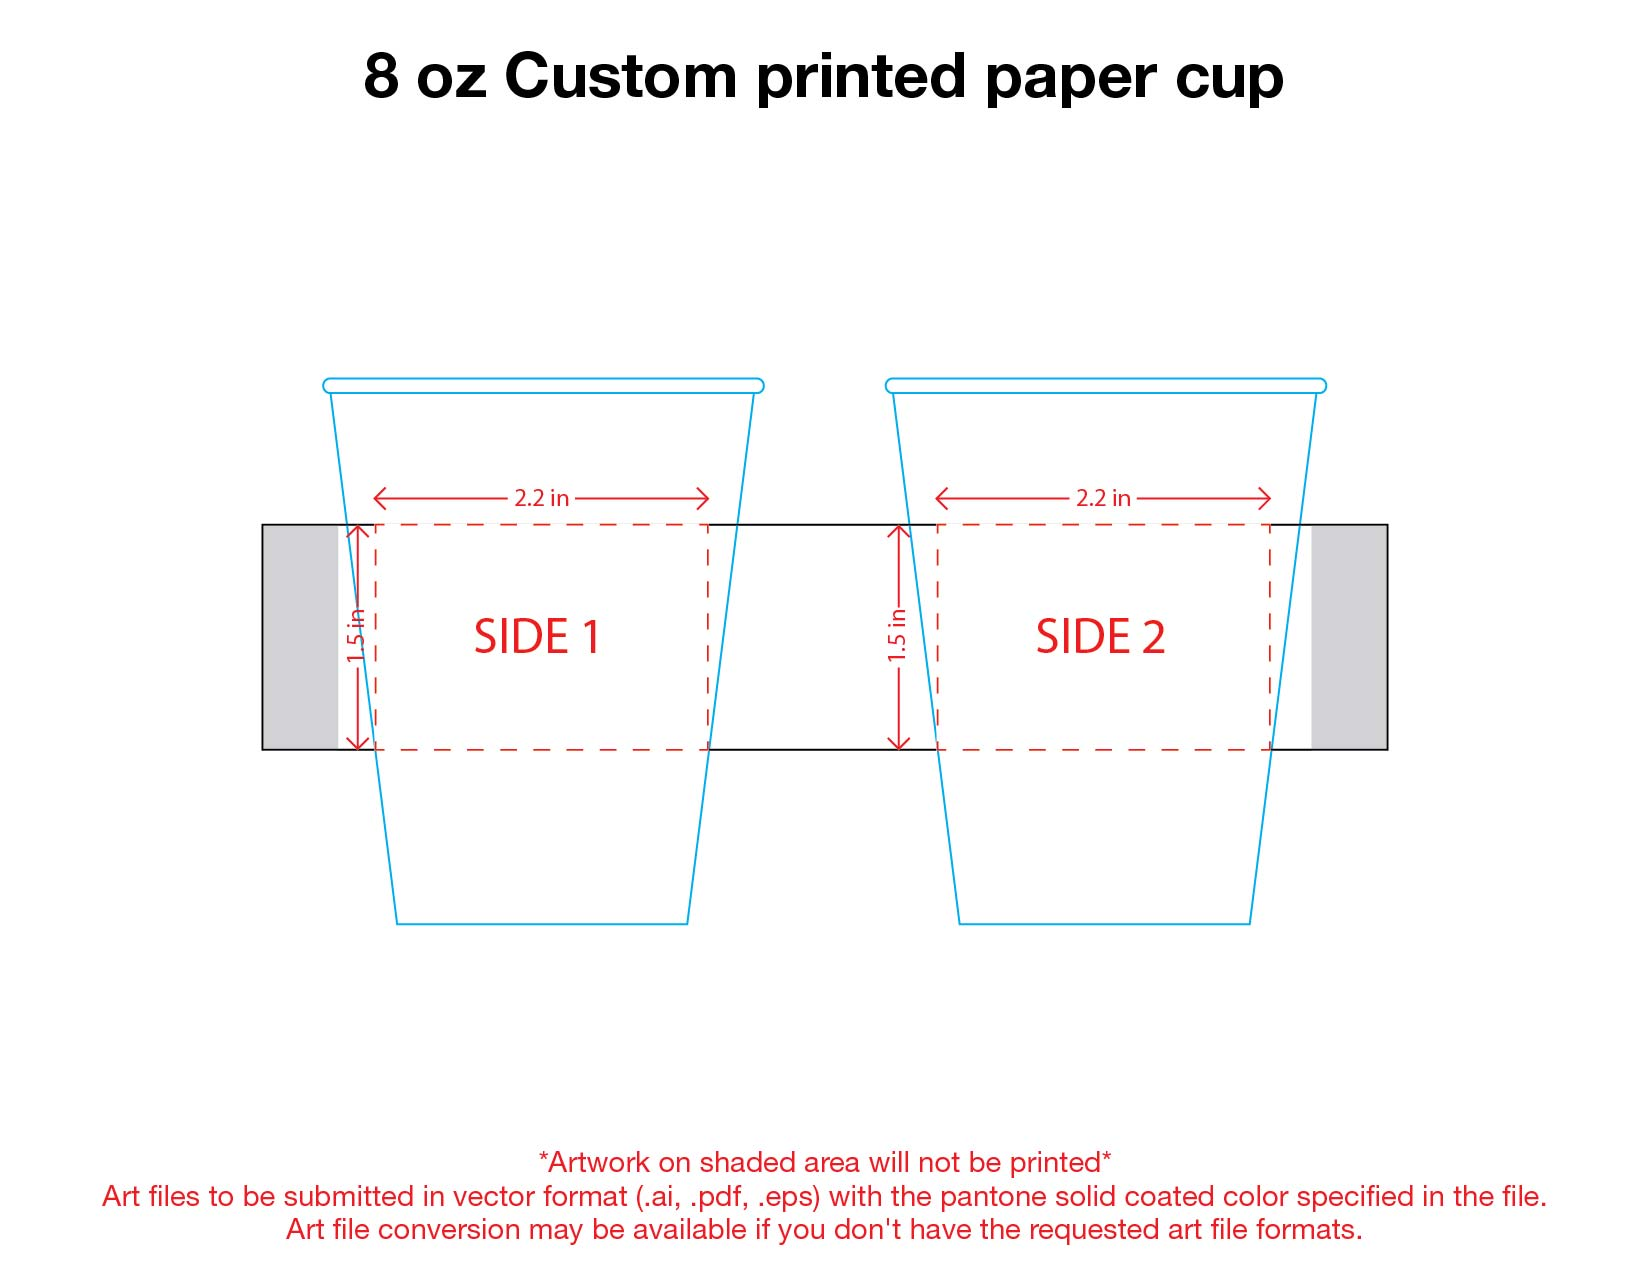 8 oz. Custom Printed Recyclable Paper